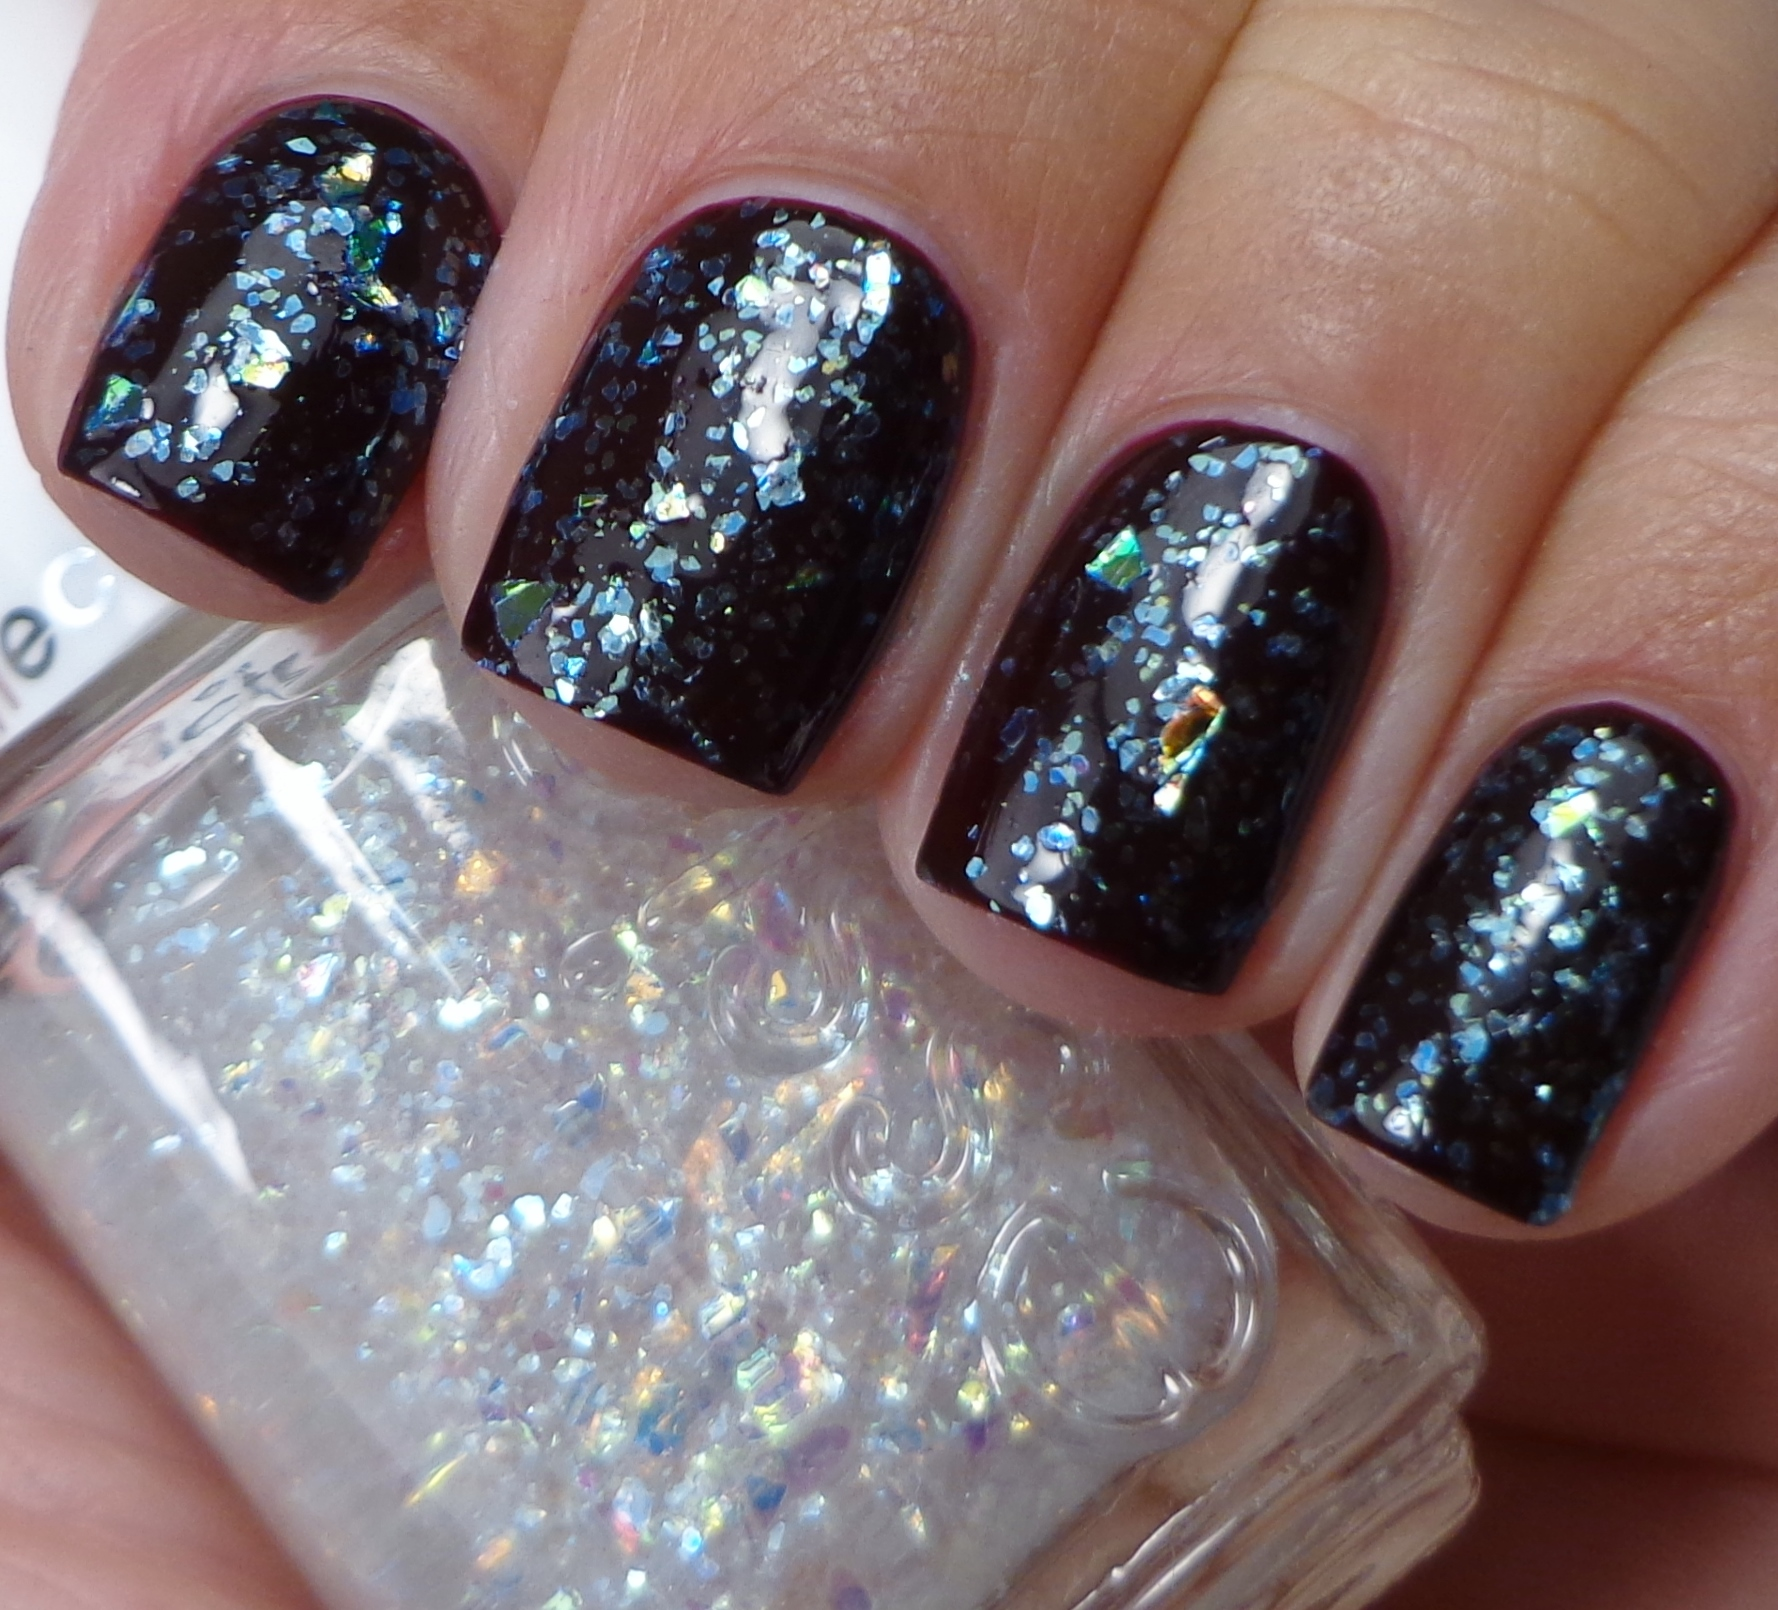 Sparkle On Top Archives - Of Life and Lacquer